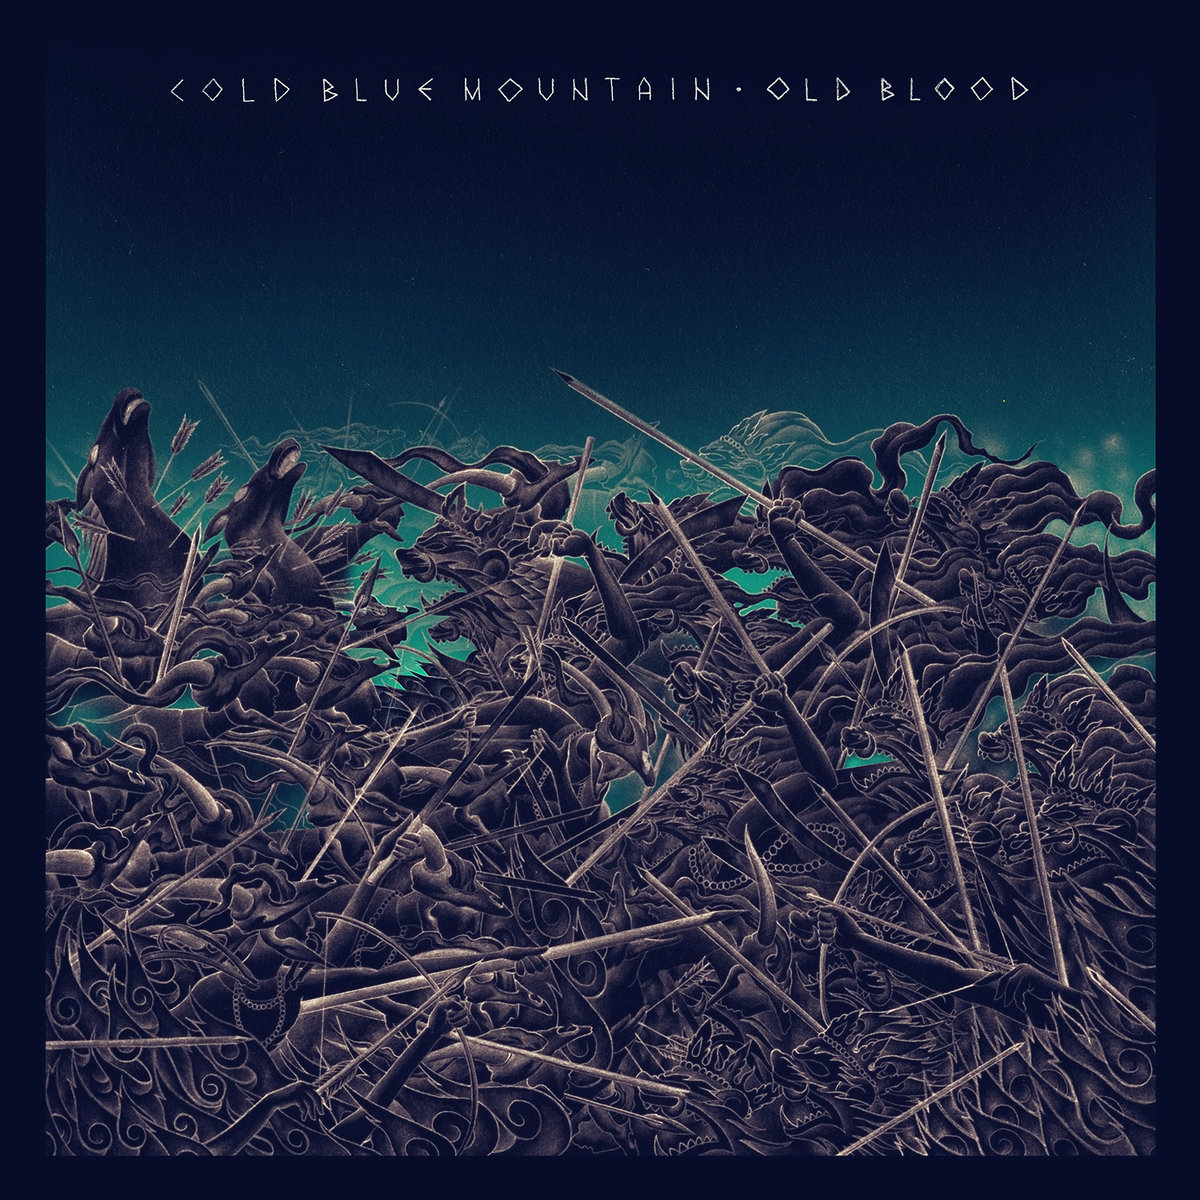 Cold Blue Mountain - Strongest Will @ 'Old Blood' album (metal, crust)